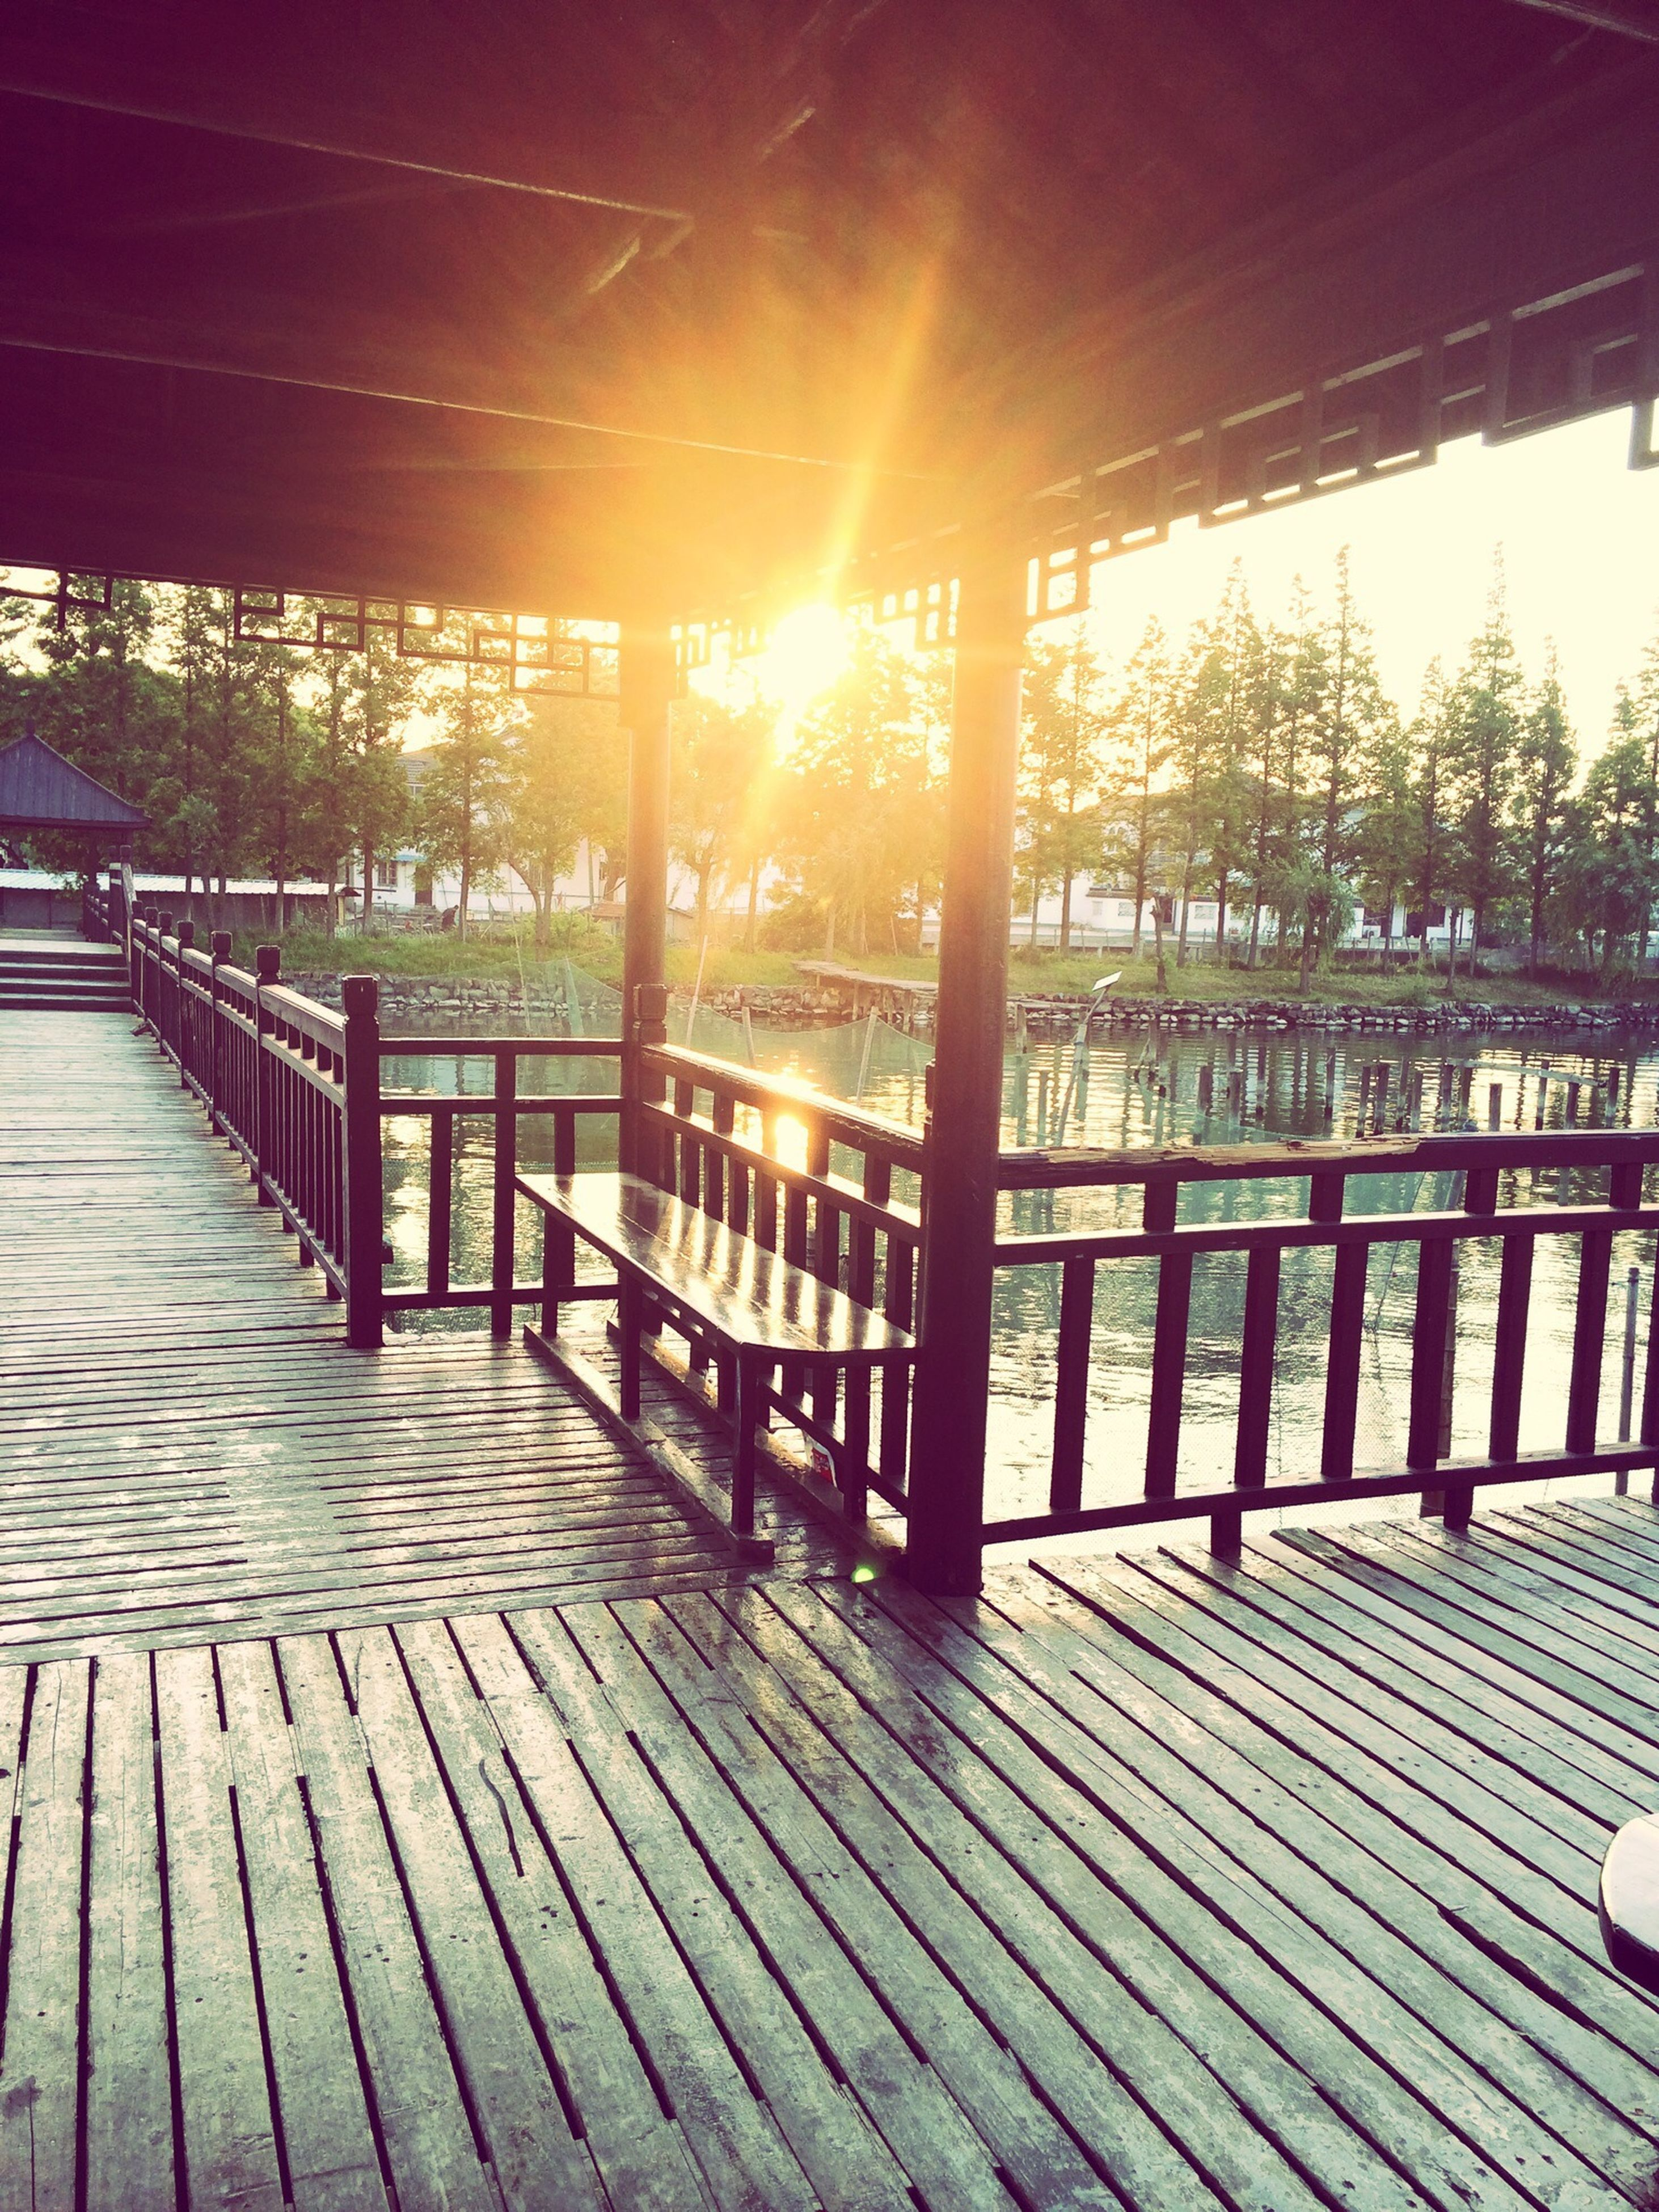 sunlight, railing, tree, shadow, sun, wood - material, tranquility, bench, empty, tranquil scene, sunbeam, nature, water, absence, pier, built structure, sunset, sky, no people, outdoors